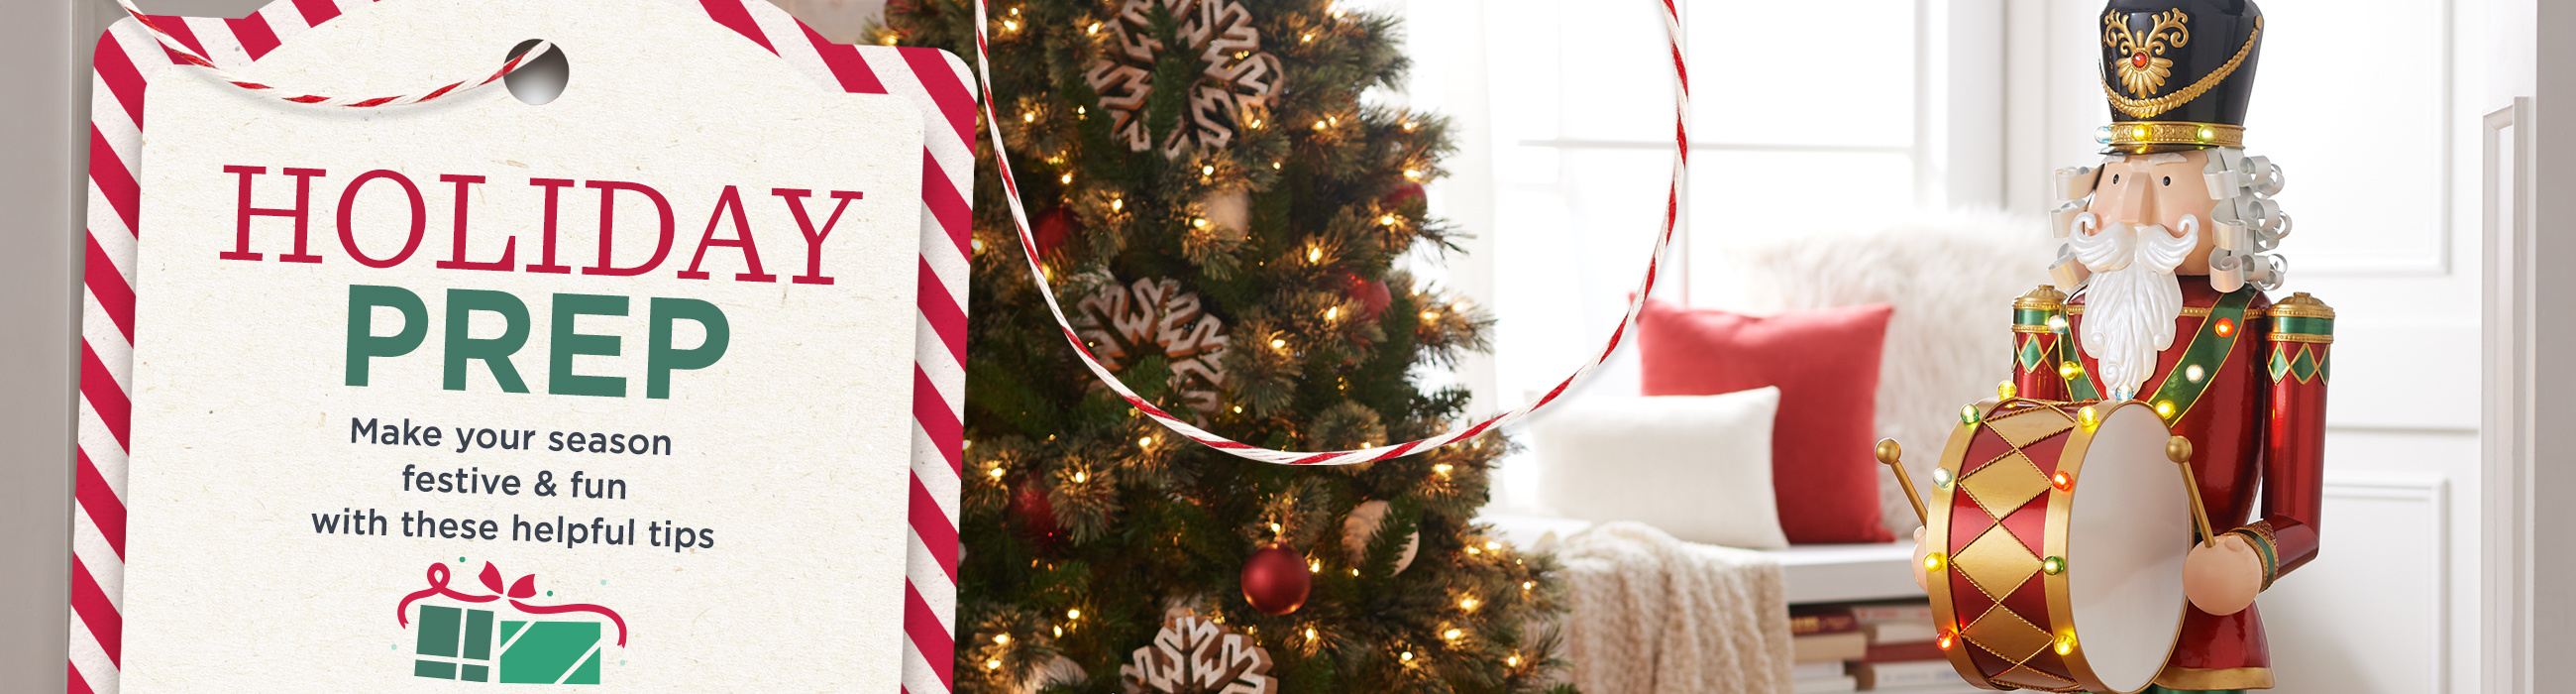 Holiday Prep.  Make your season festive & fun with these helpful tips